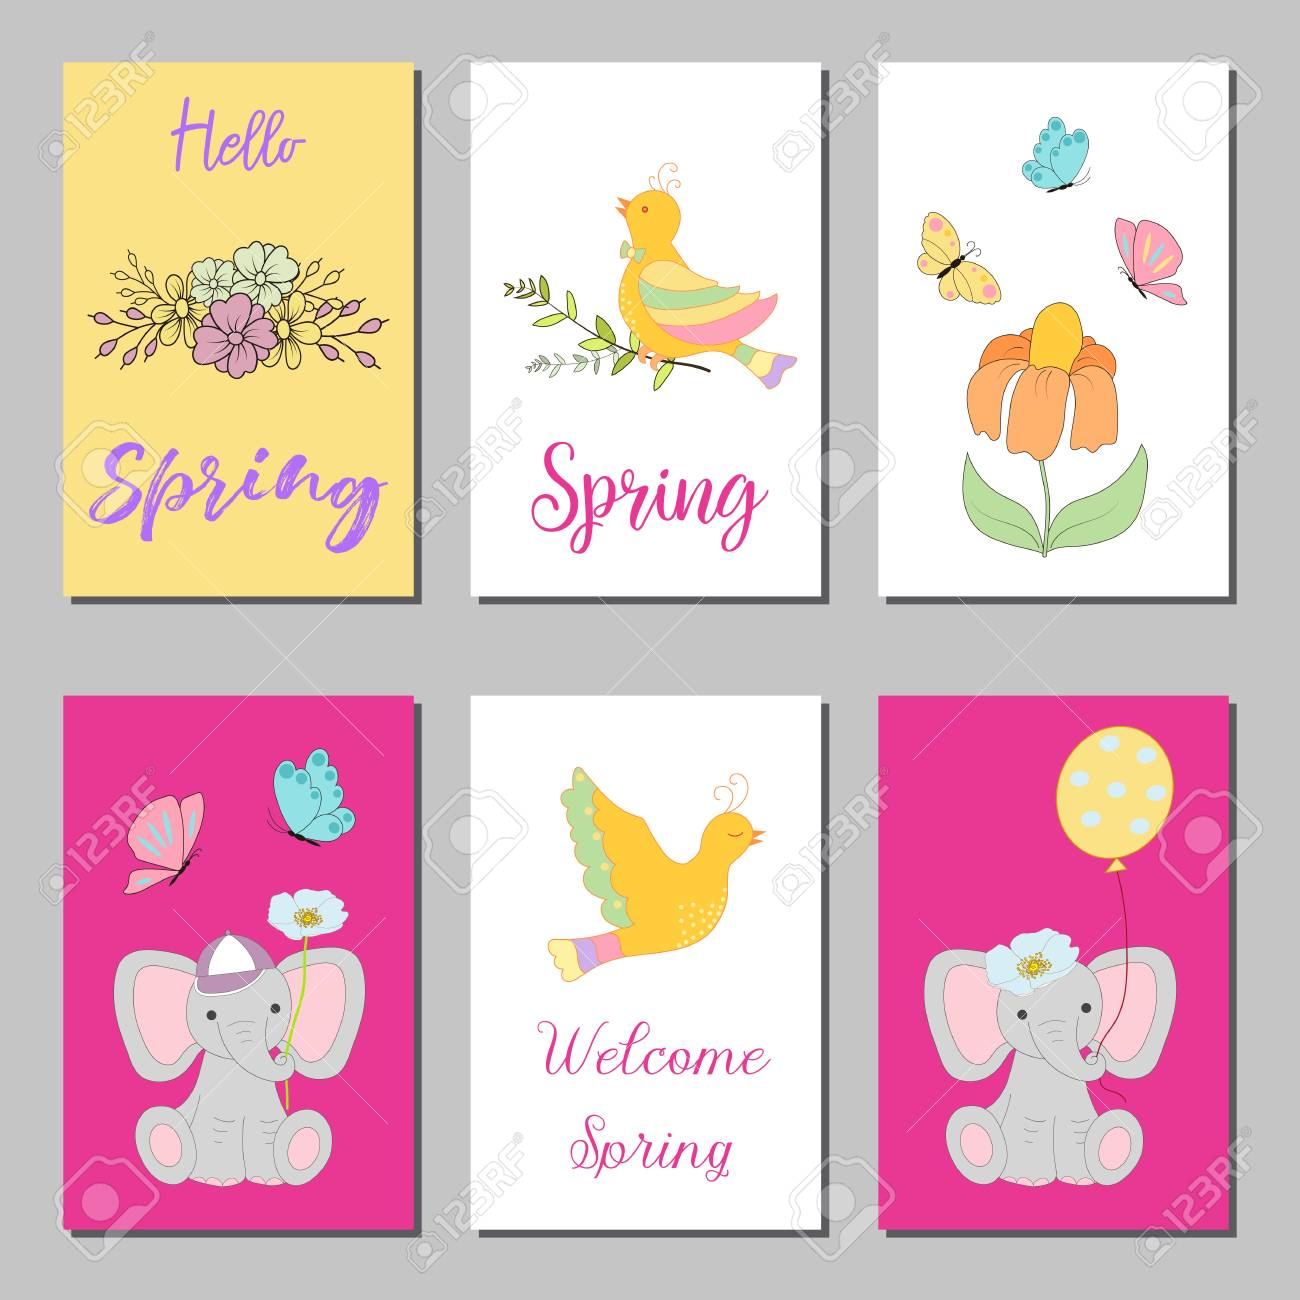 Birthday Cards Design Set With Abstract Flowers And Hand Written Text Collection Of Beautiful Greeting